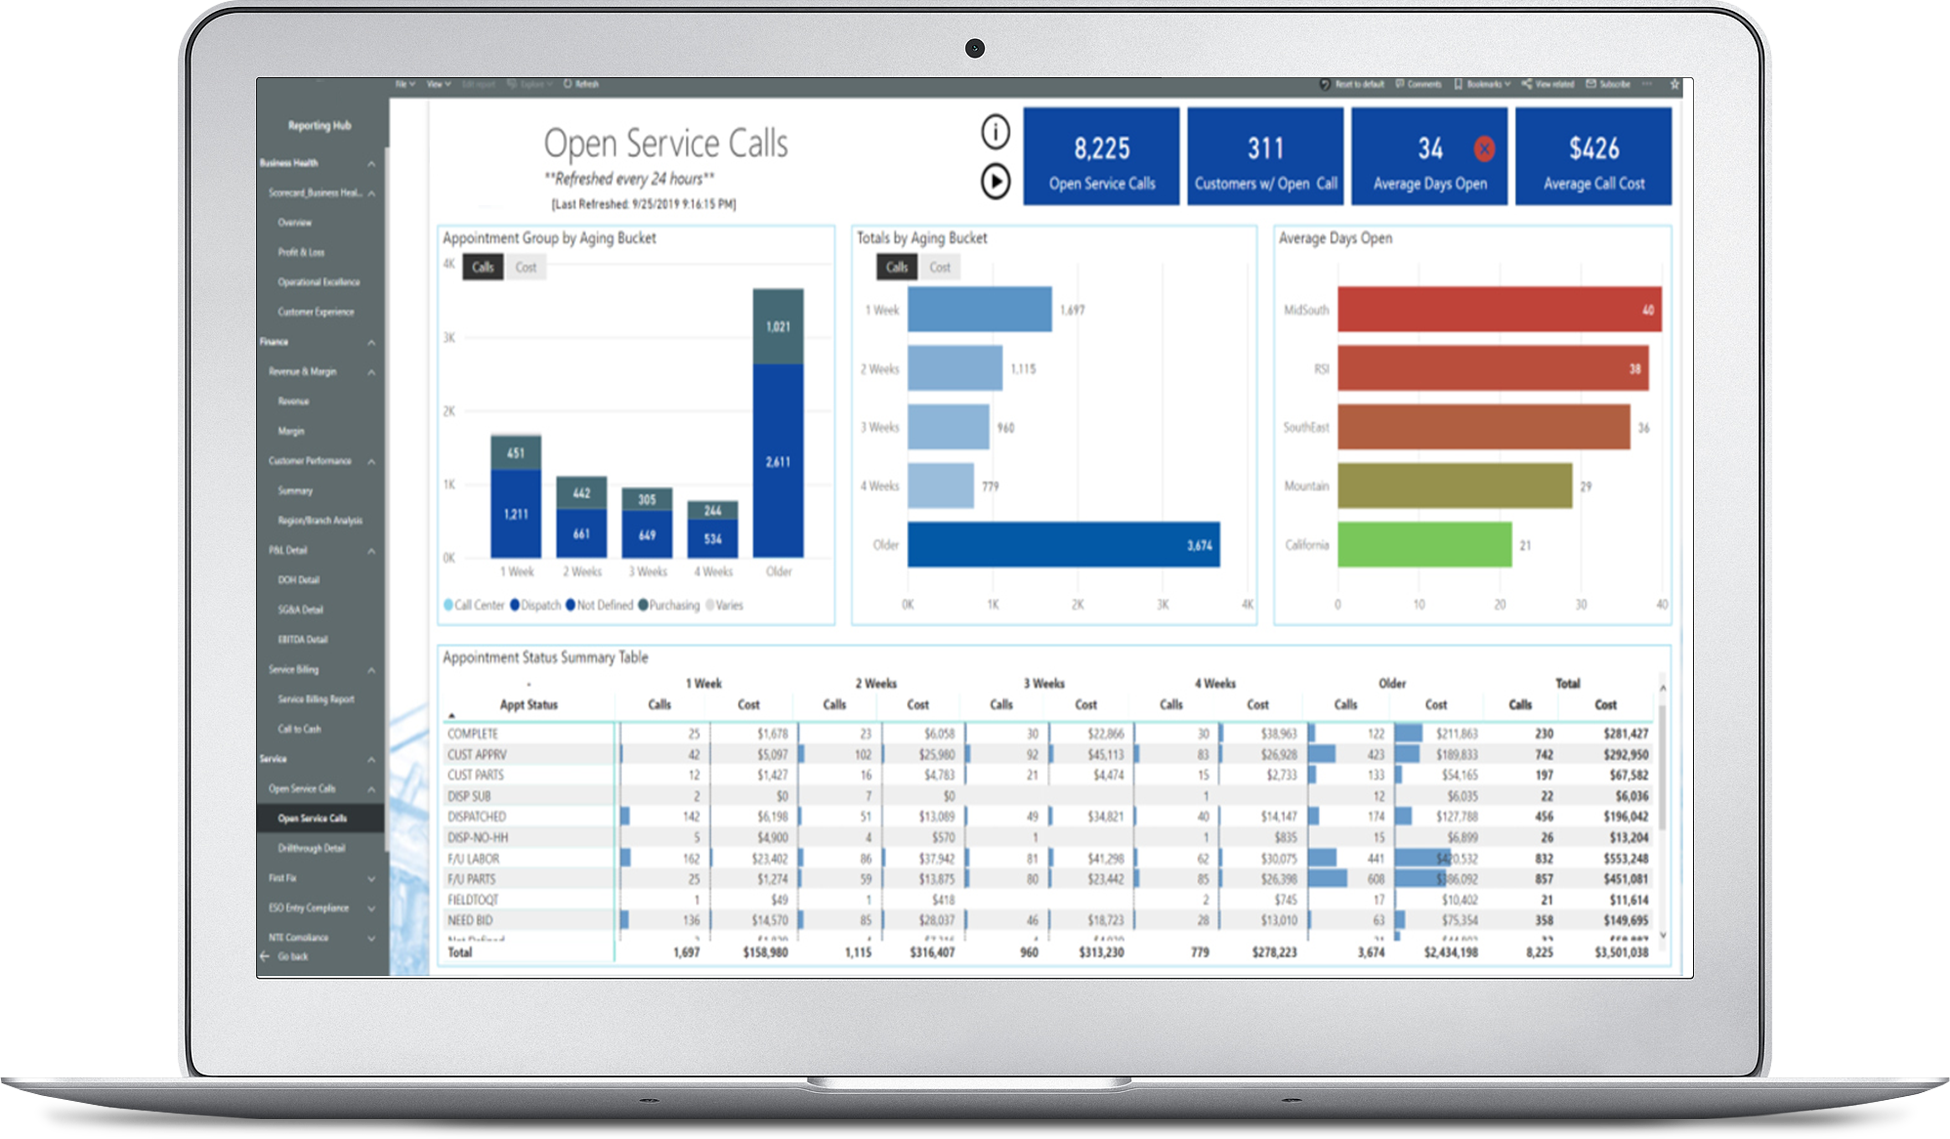 BI Dashboards For Manufacturing, Field Service, and Healthcare